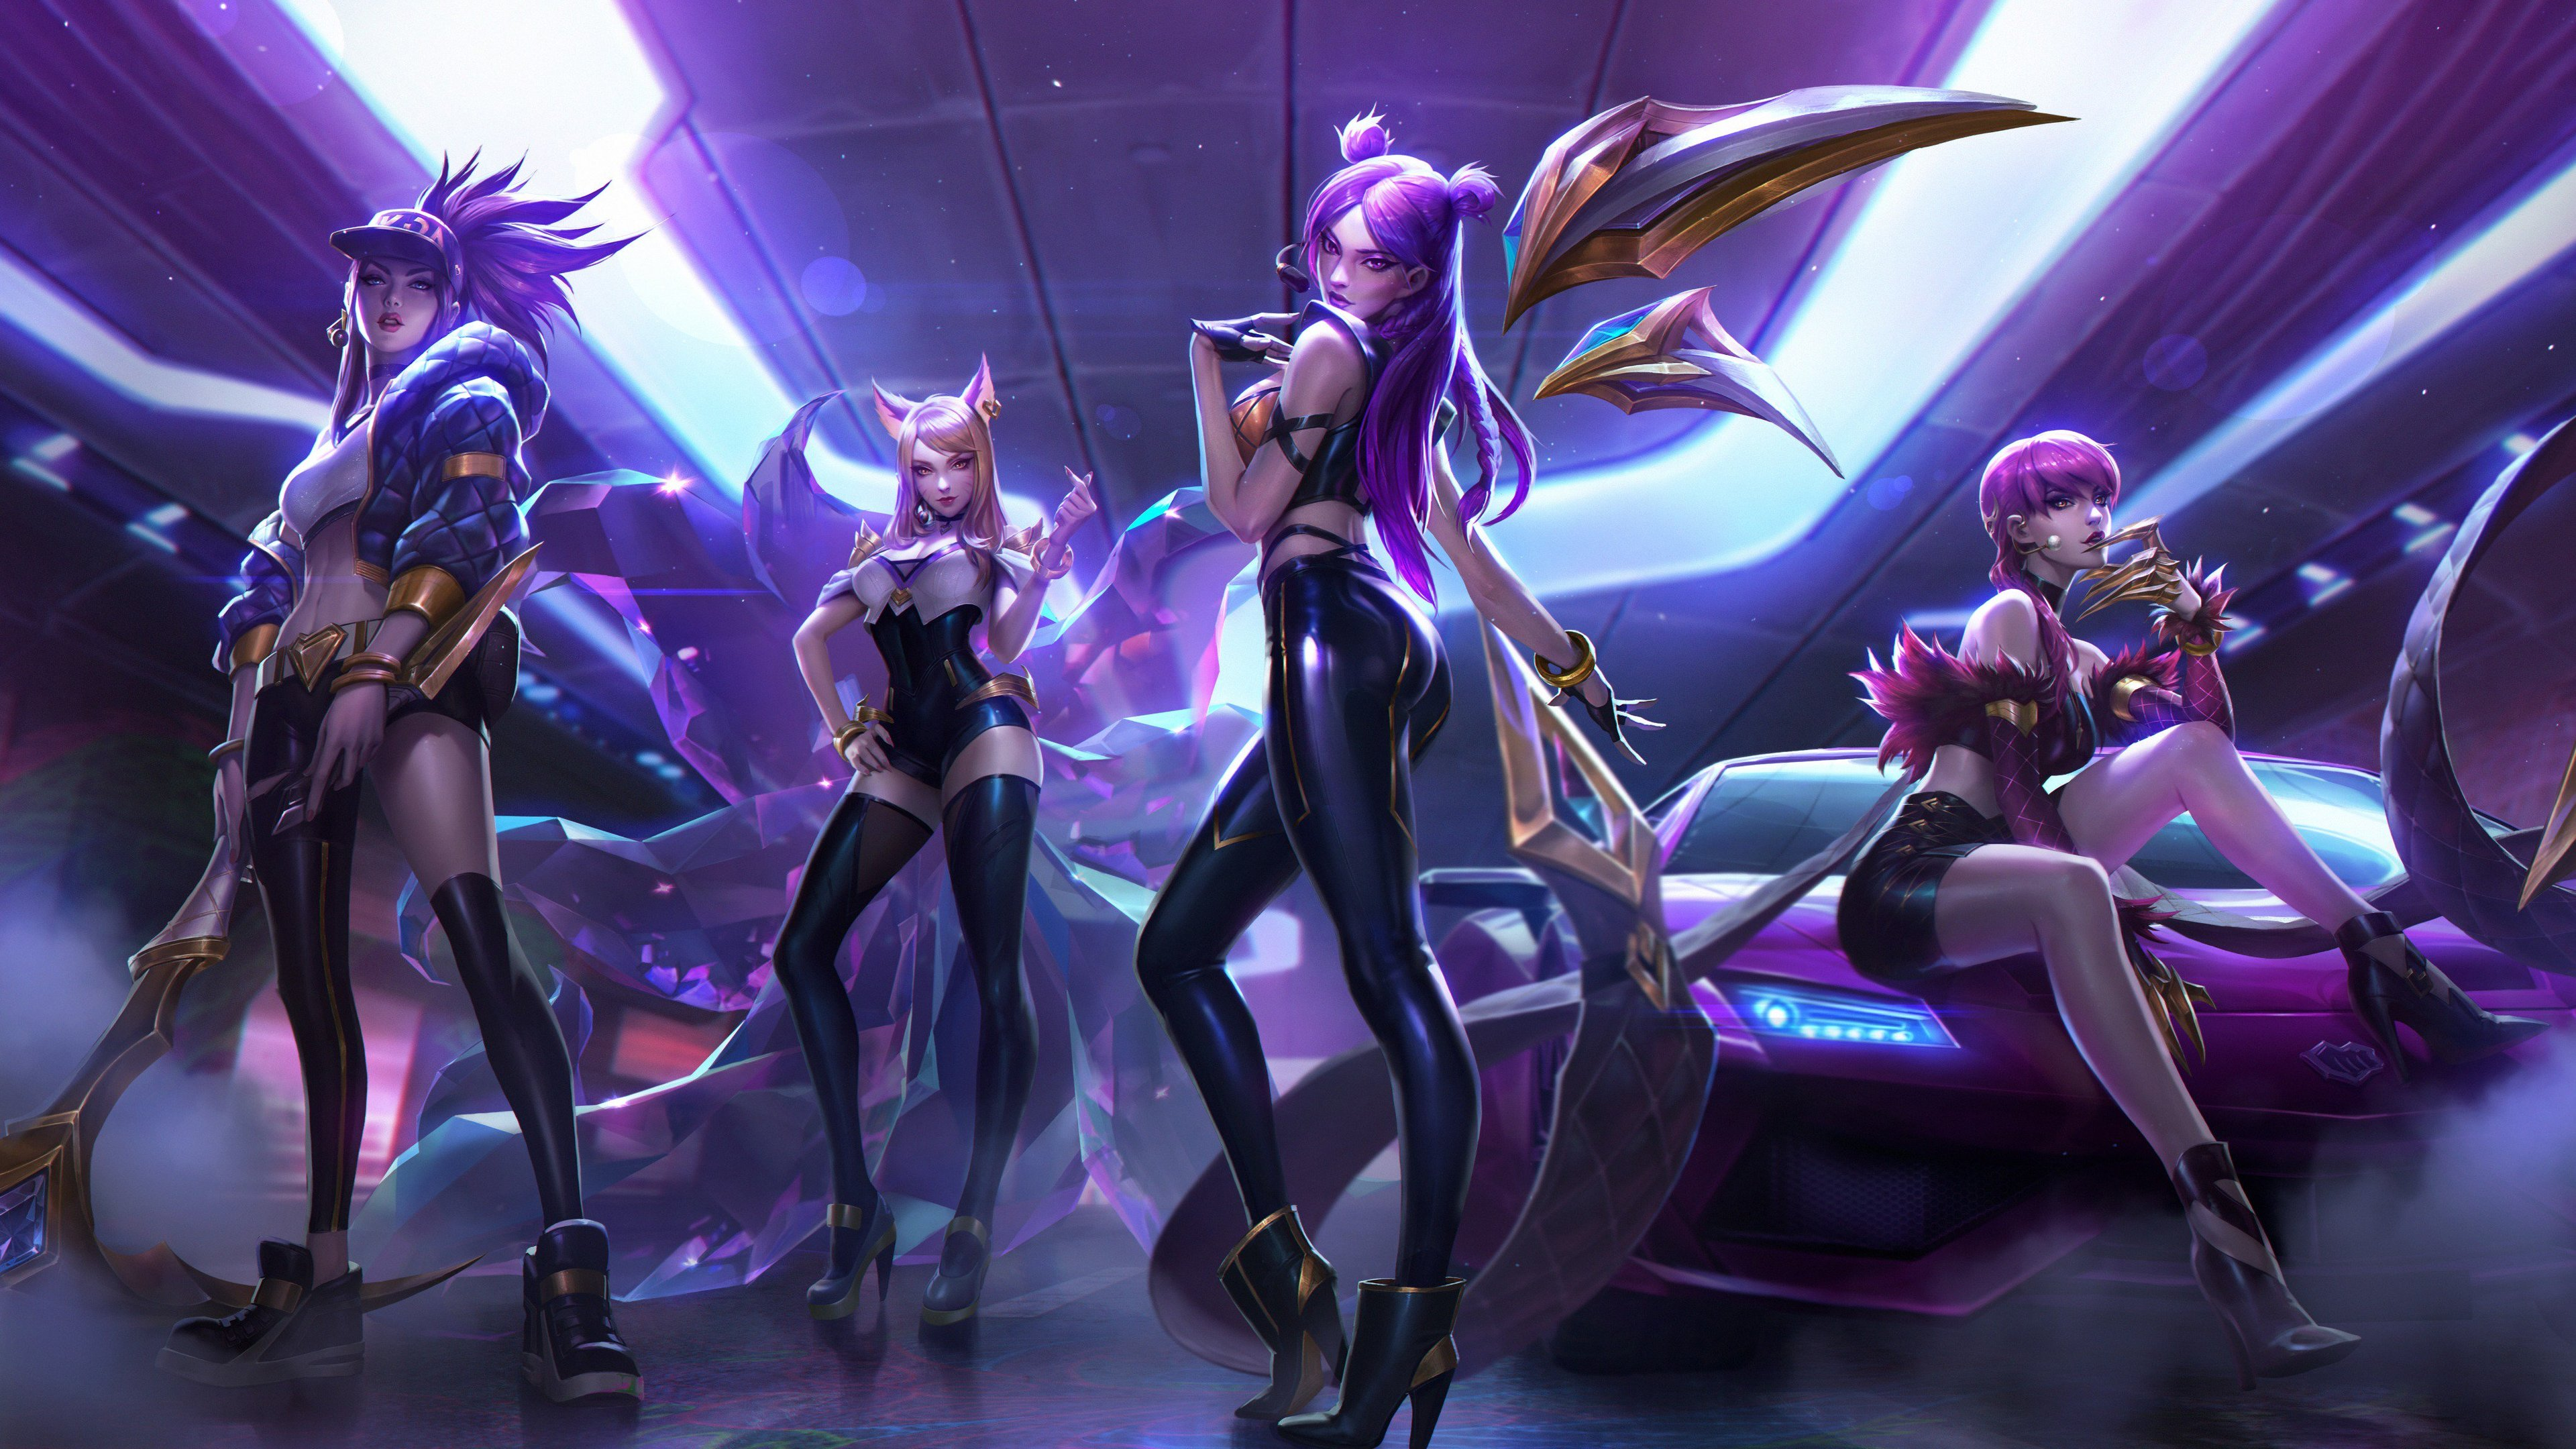 League Of Legends Wallpapers Hd Posted By John Cunningham